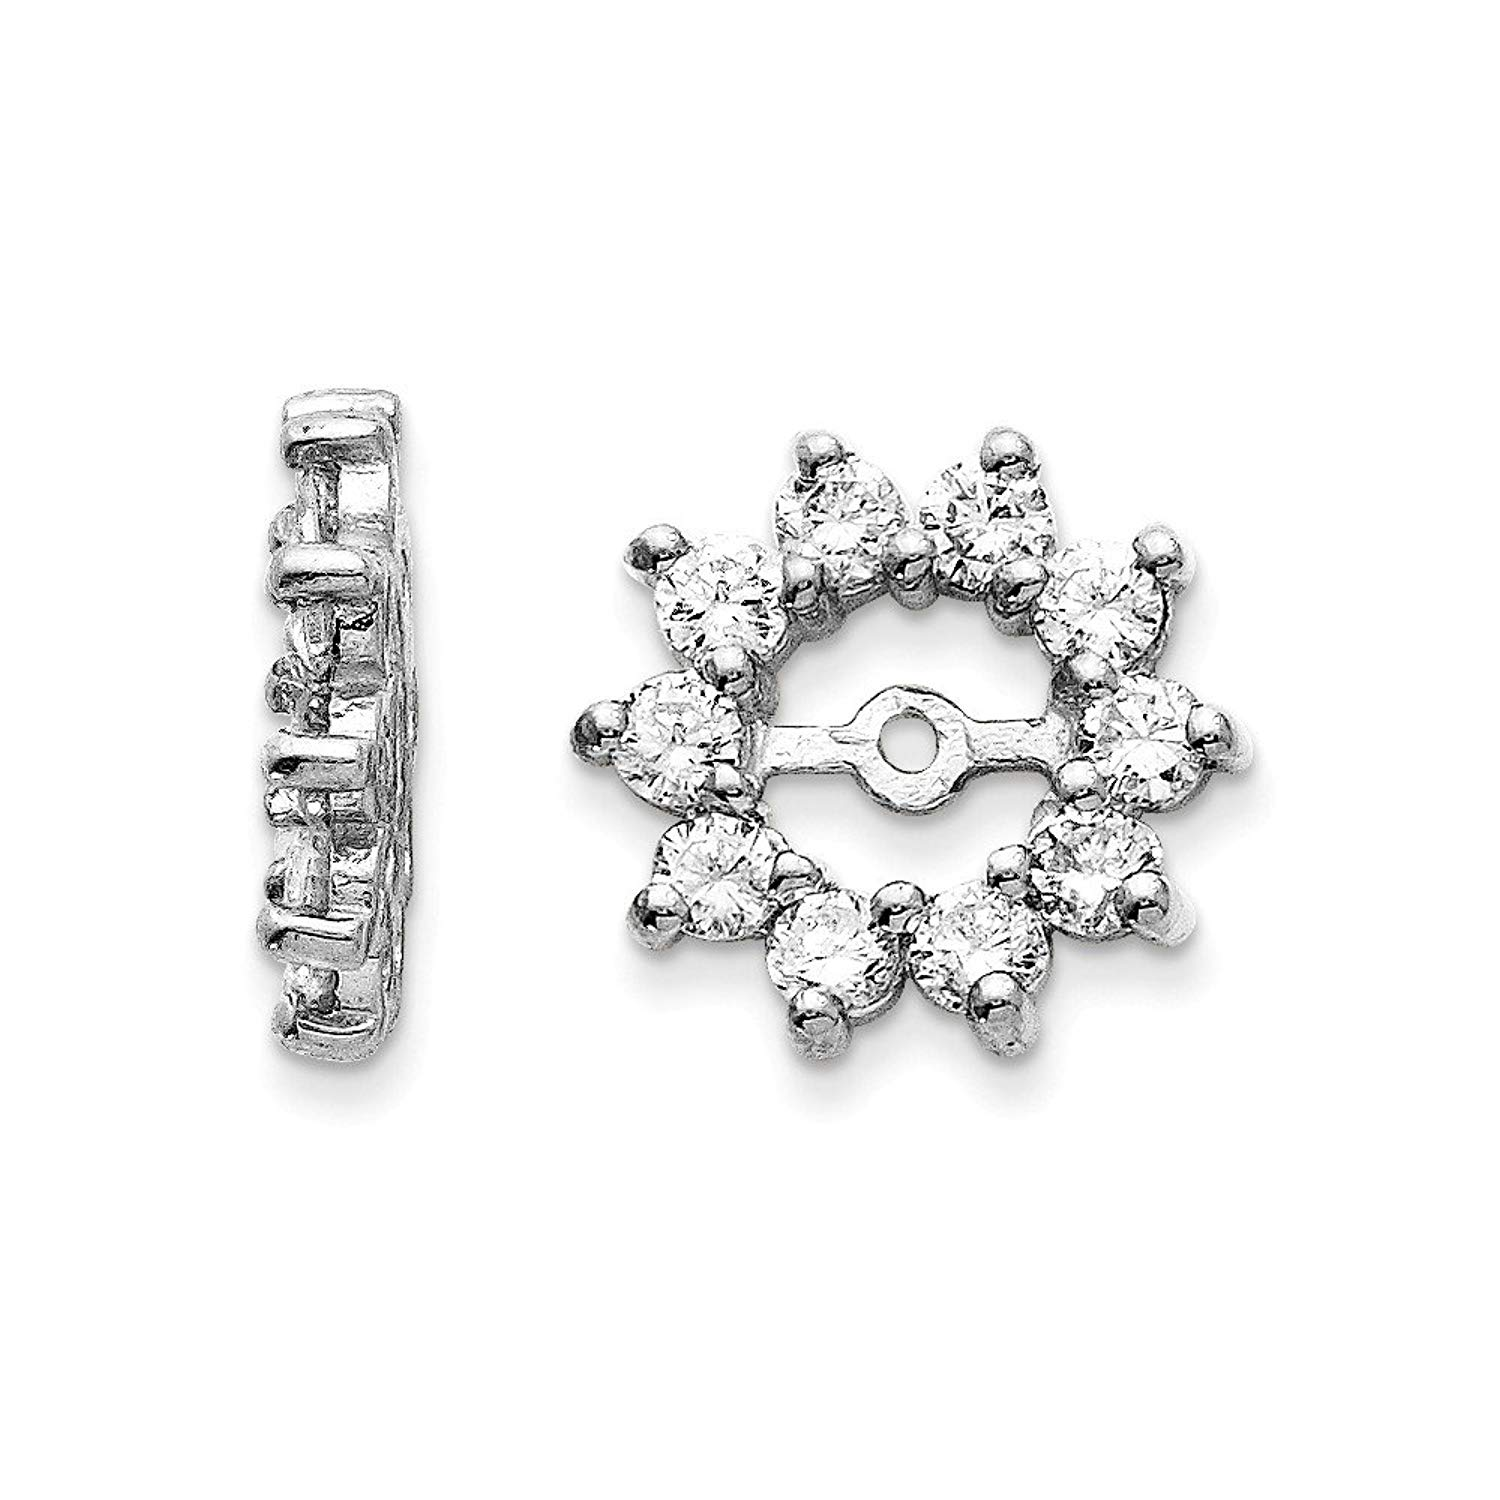 Get Quotations 14k White Gold Polished Diamond Earrings Jacket